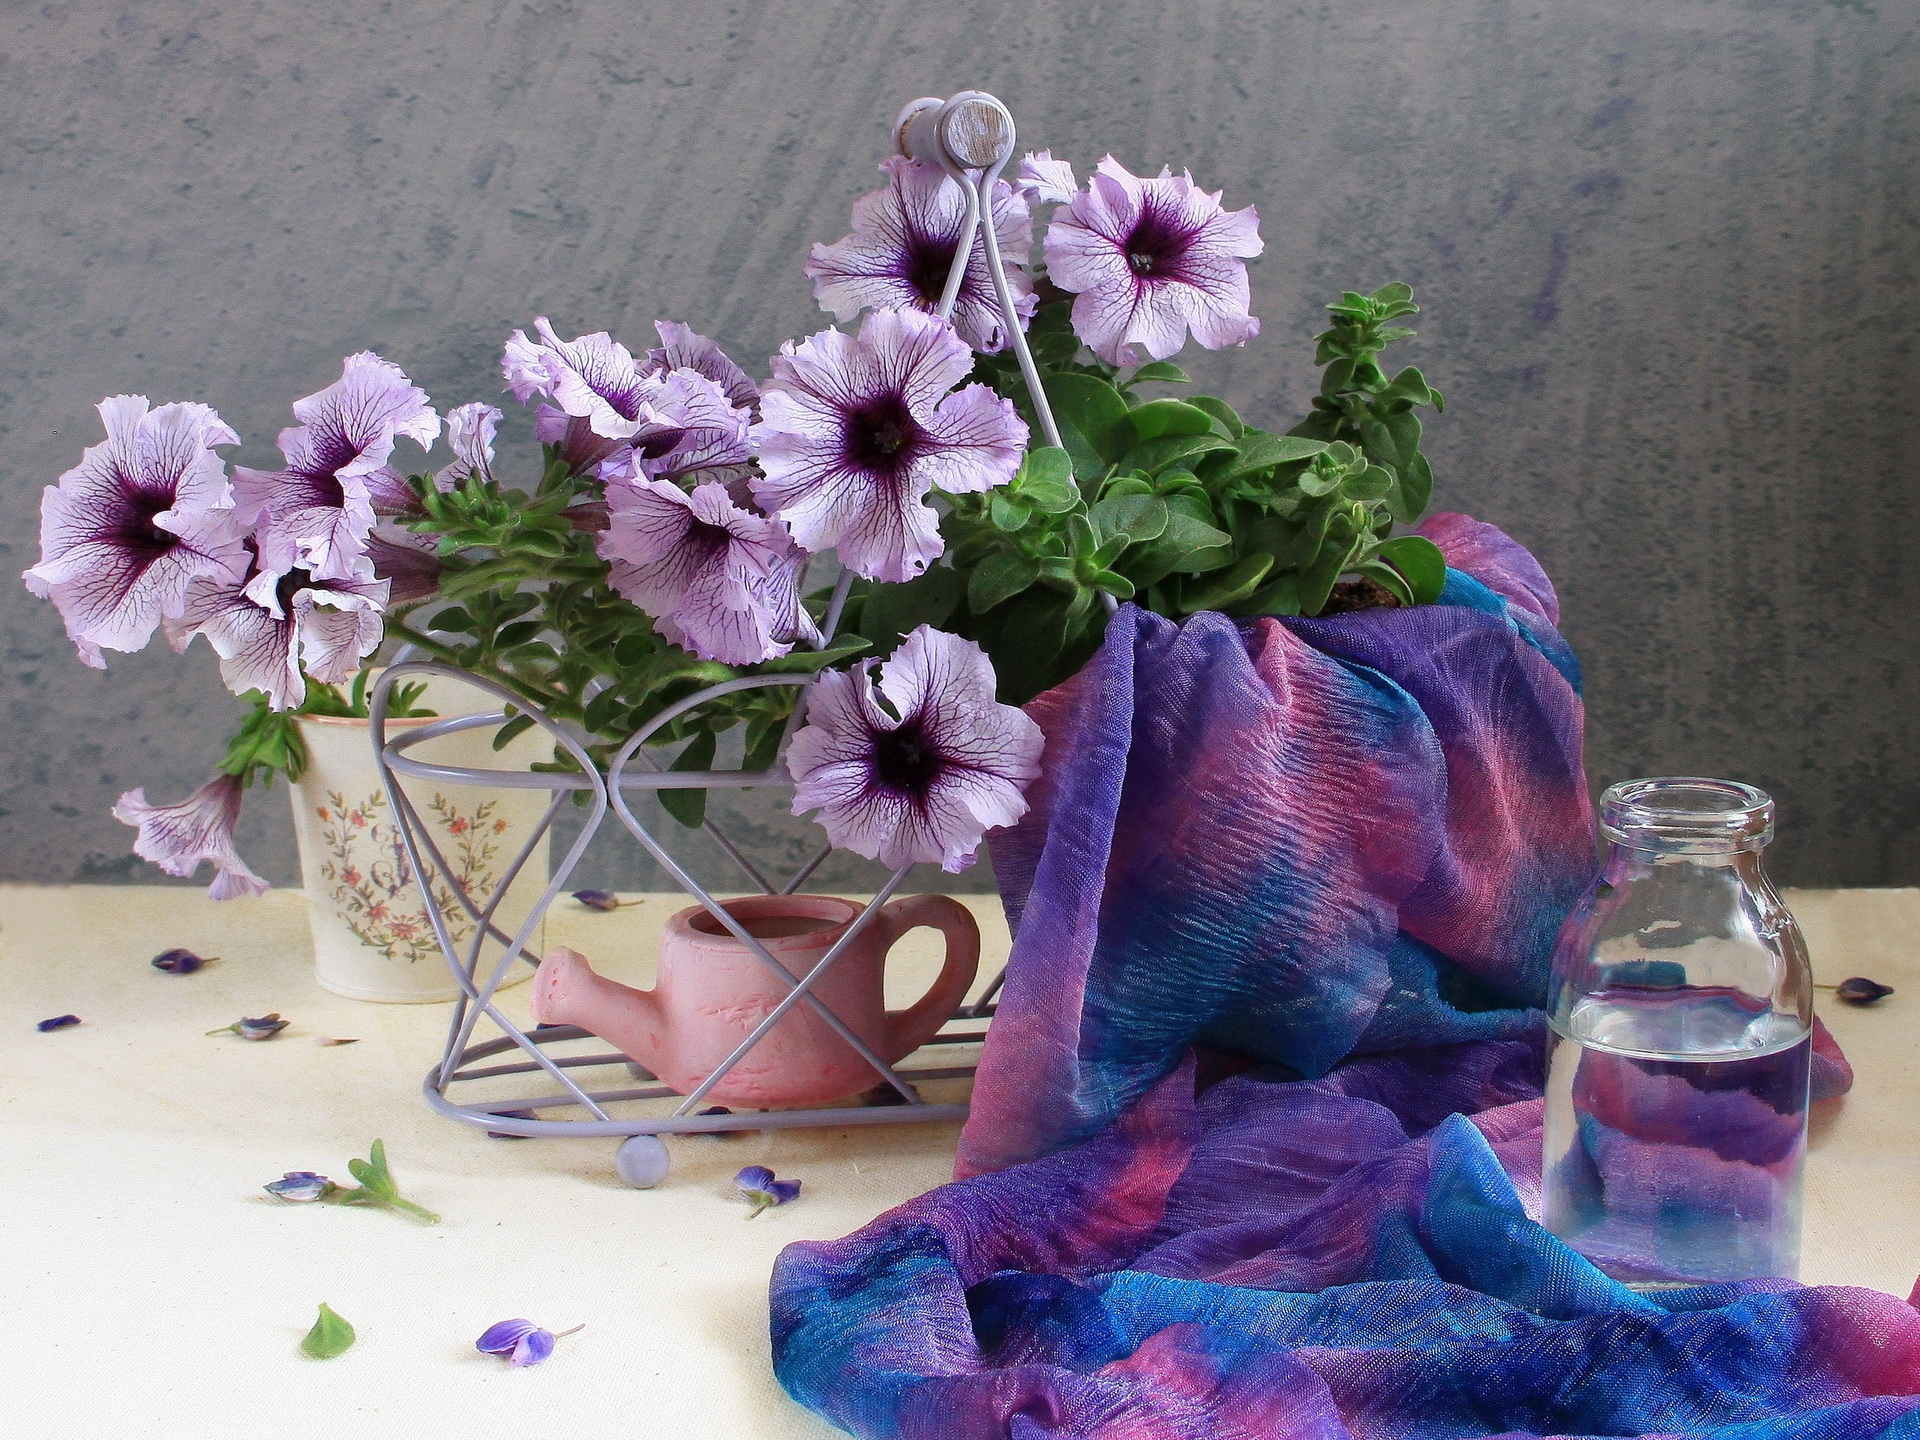 118714 Screensavers and Wallpapers Scarf for phone. Download Flowers, Water, Petals, Bottle, Scarf, Watering Can, Calibrachoa, Calirohoa pictures for free